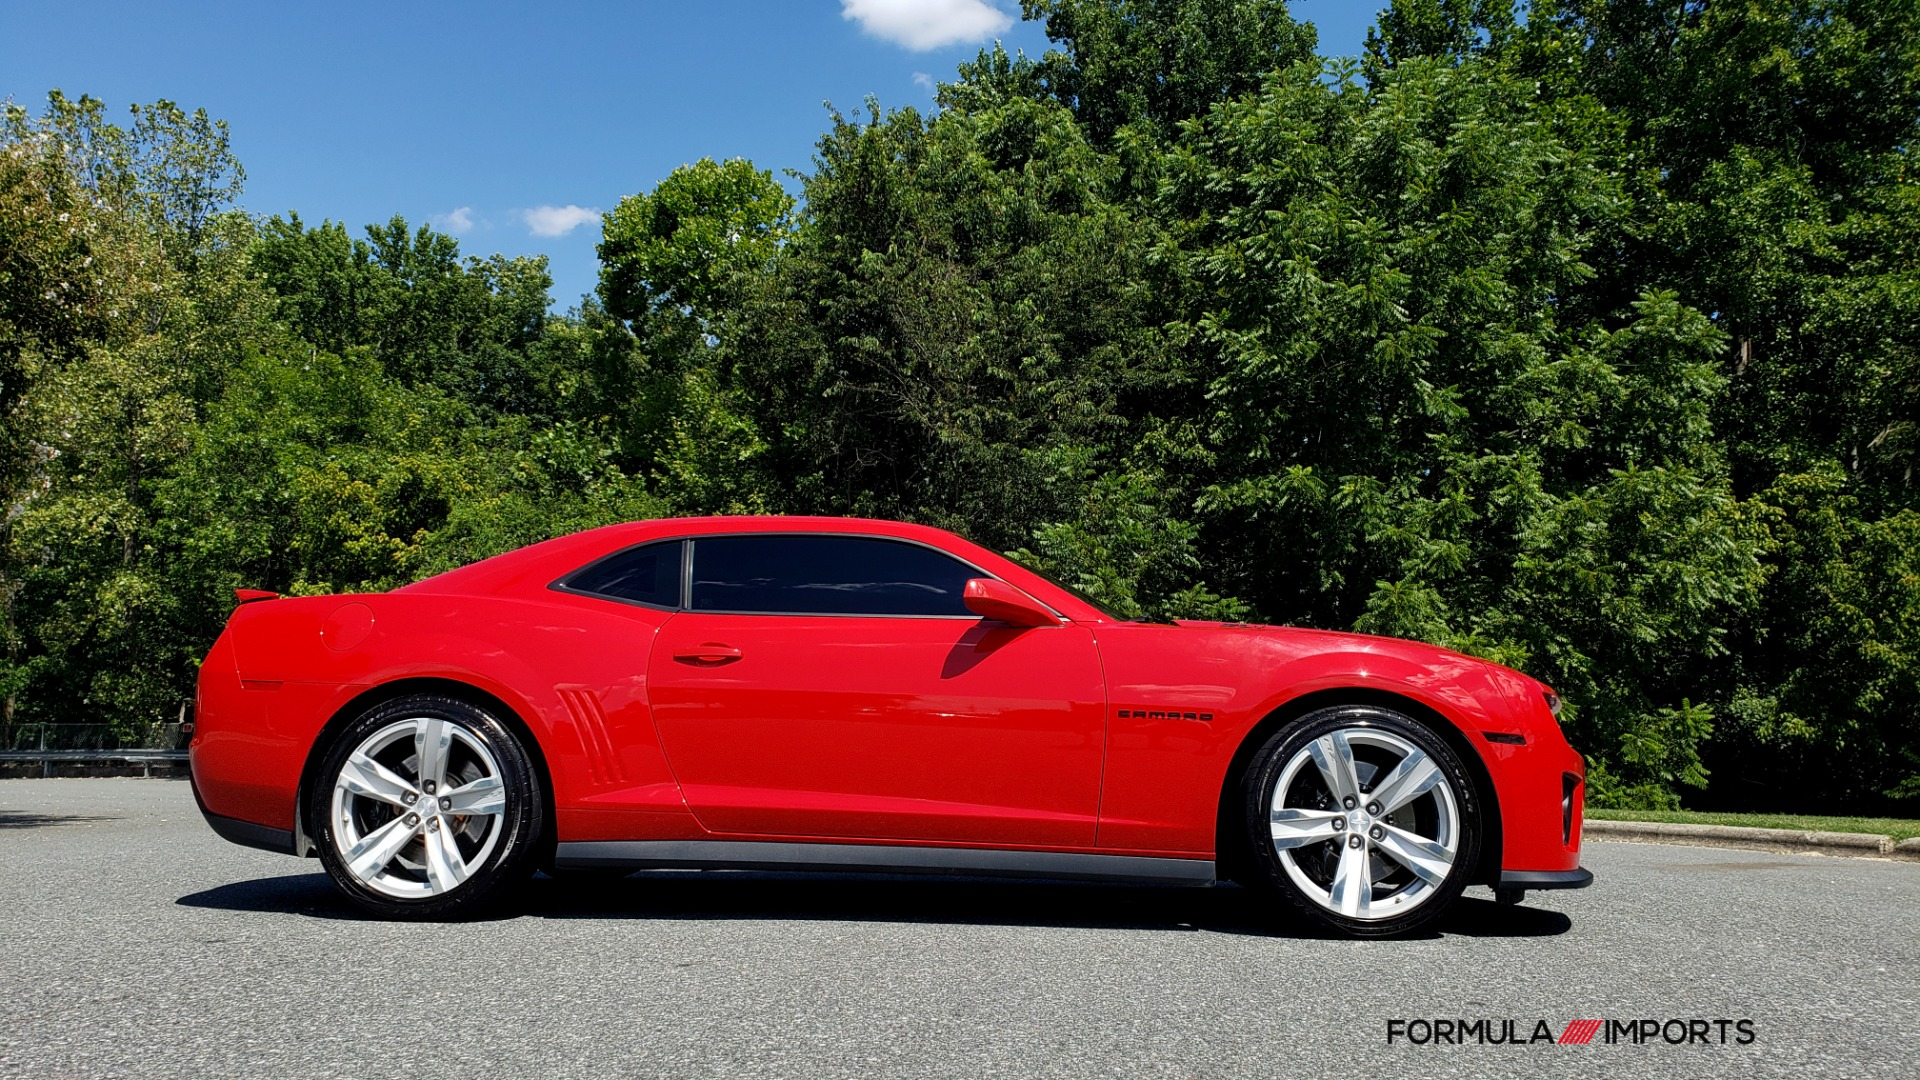 Used 2013 Chevrolet CAMARO ZL1 580HP / AUTO / NAV / BOSTON ACOUSTIC SND / REARVIEW for sale $40,995 at Formula Imports in Charlotte NC 28227 6